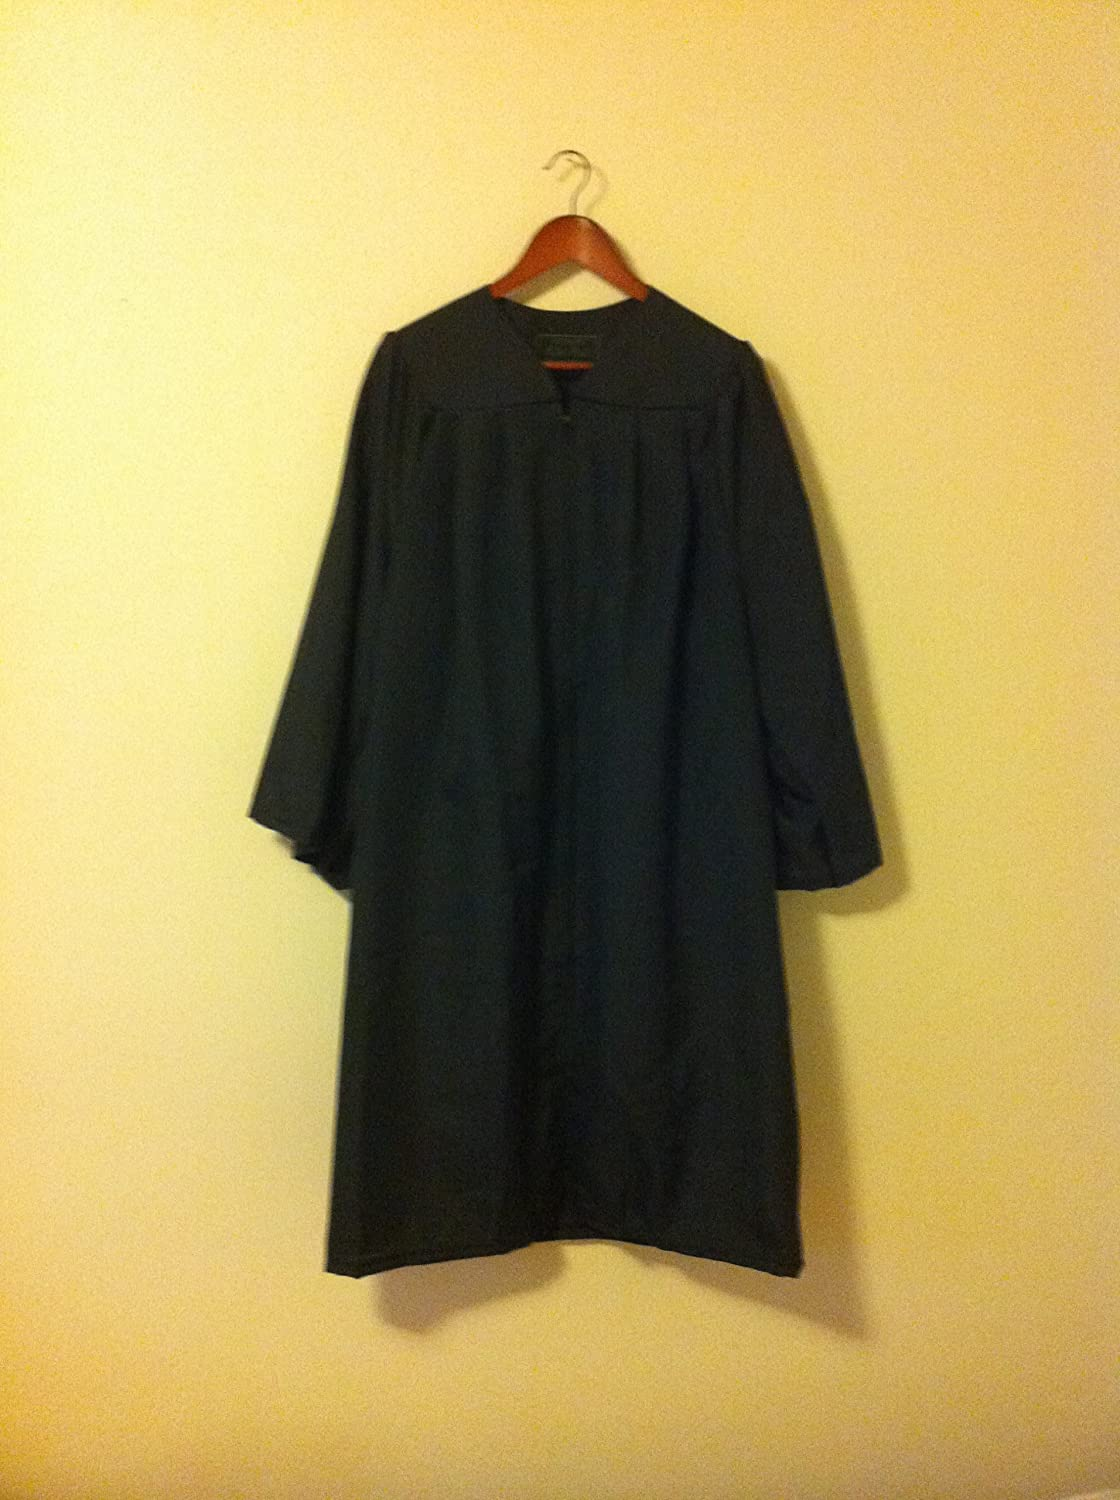 Amazon.com : Oak Hall Cap and Gown : Everything Else